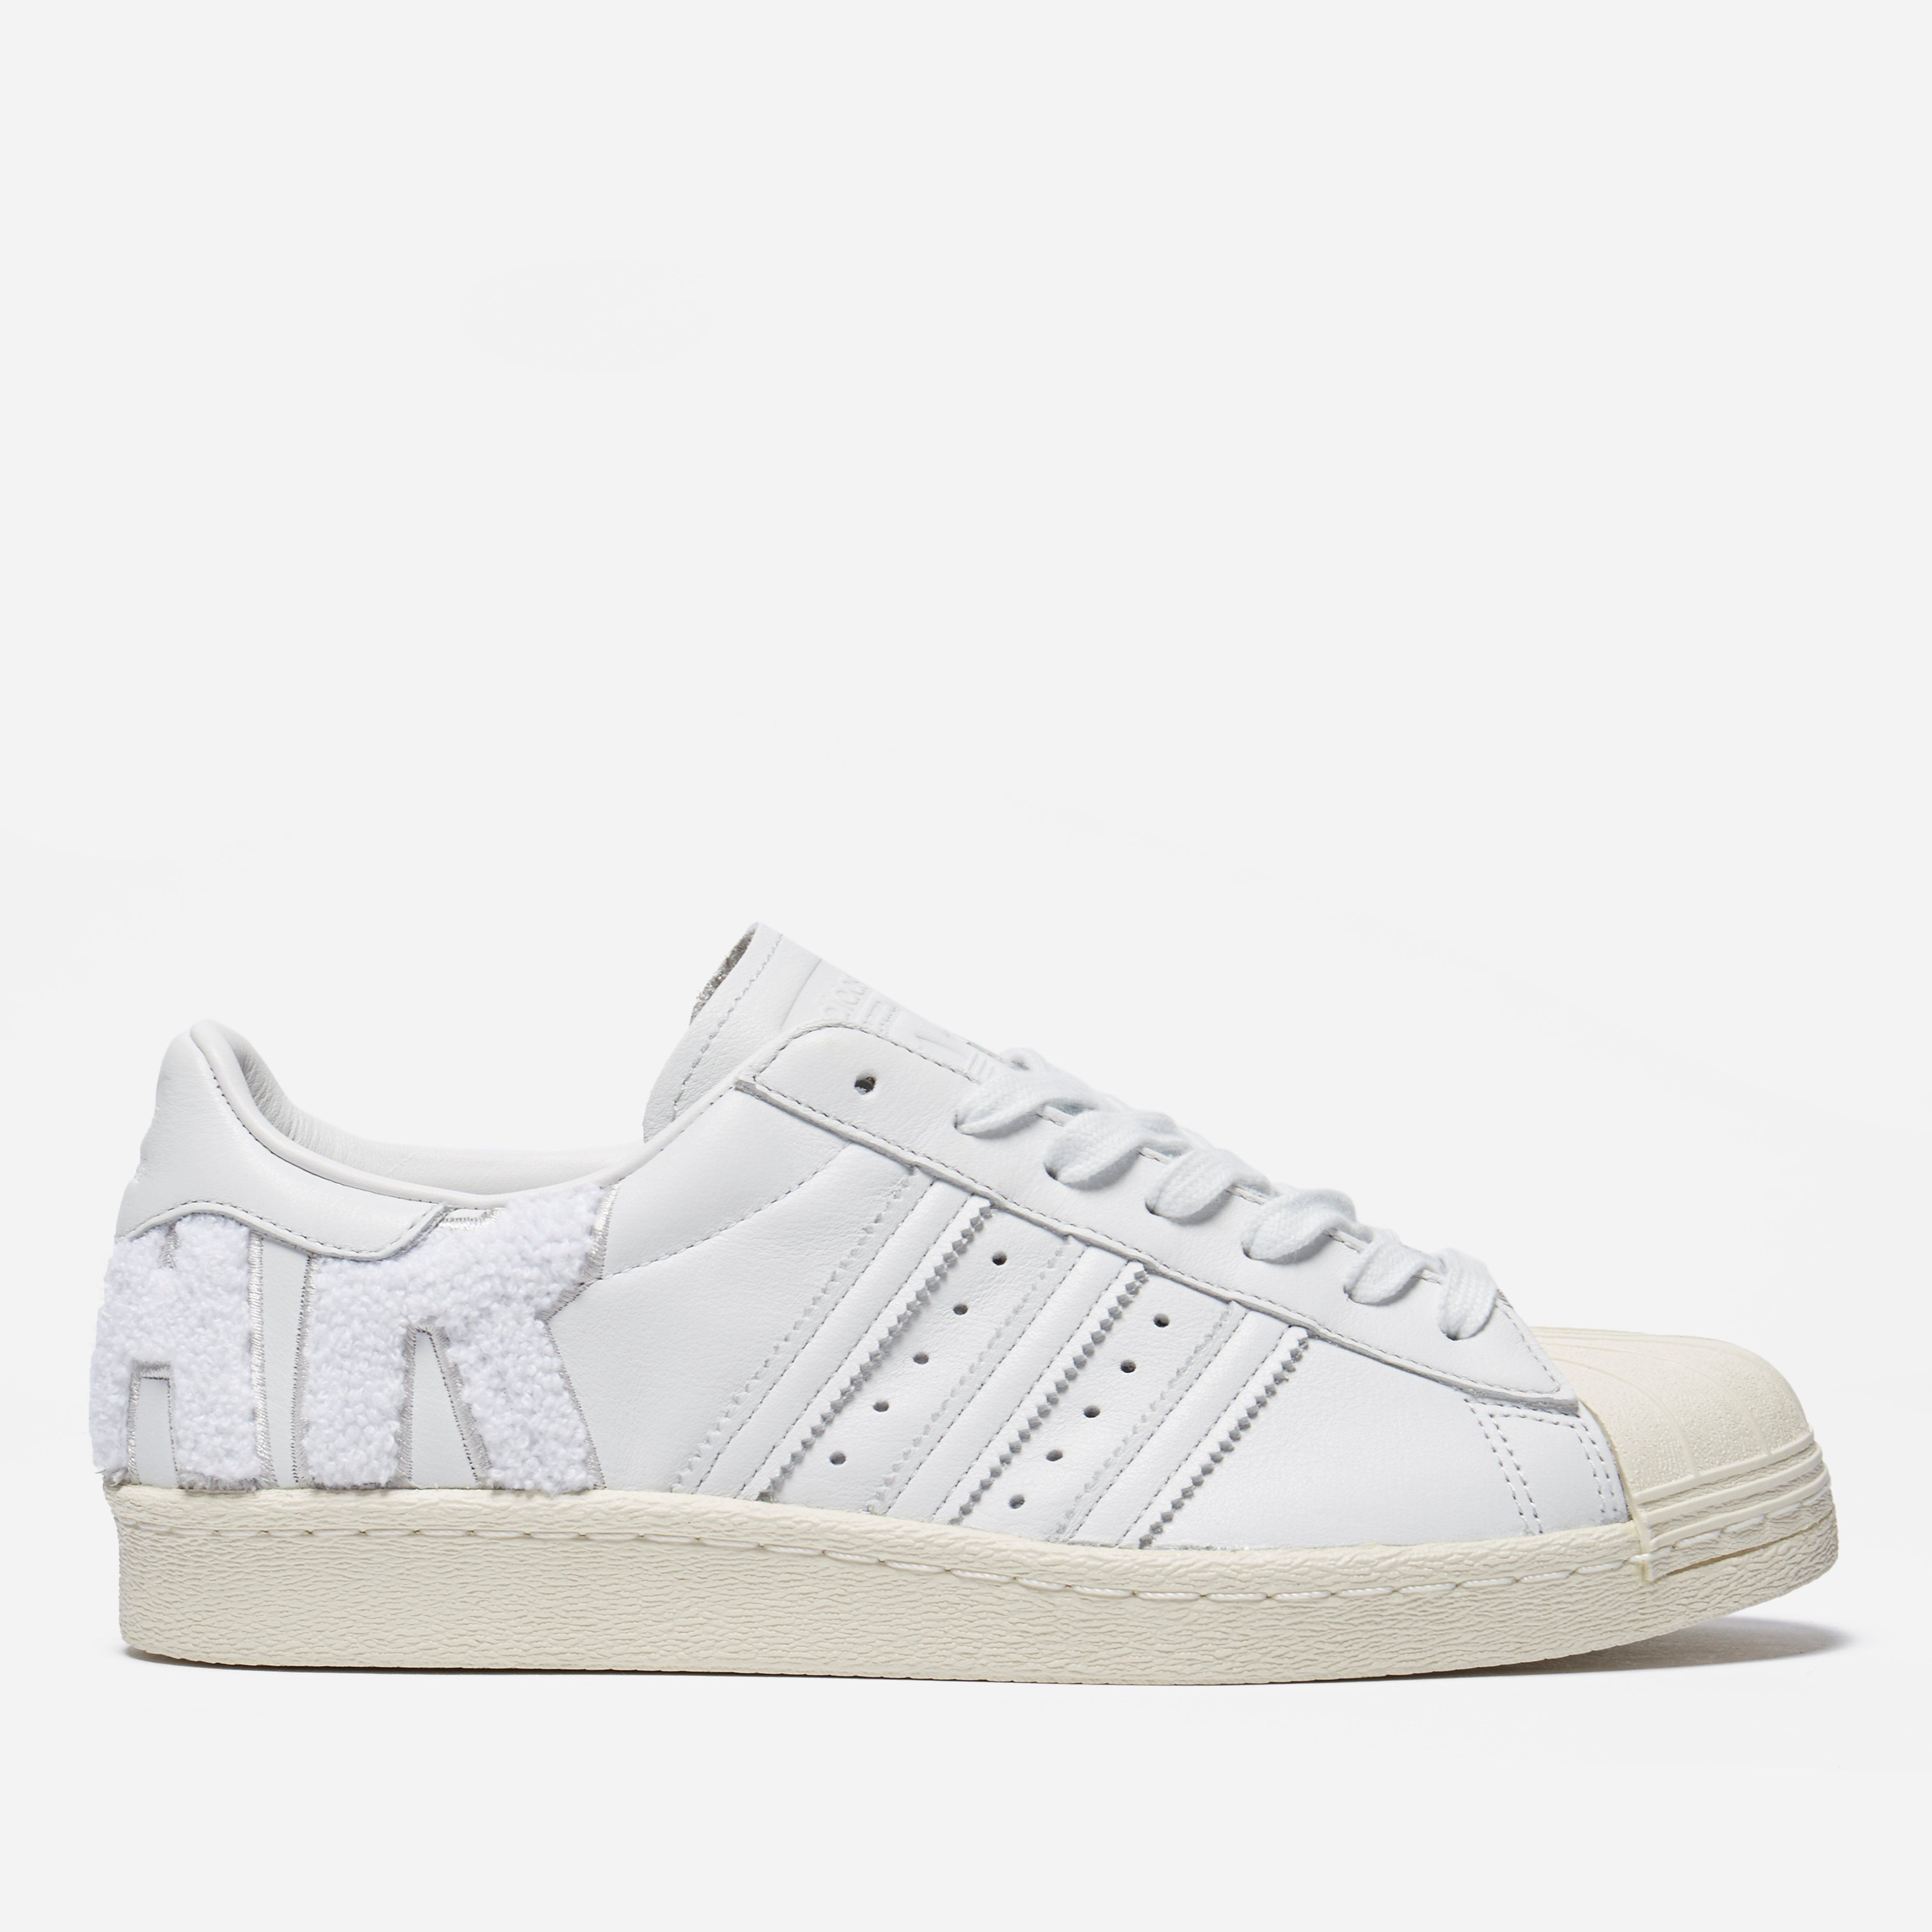 adidas Originals Superstar 80